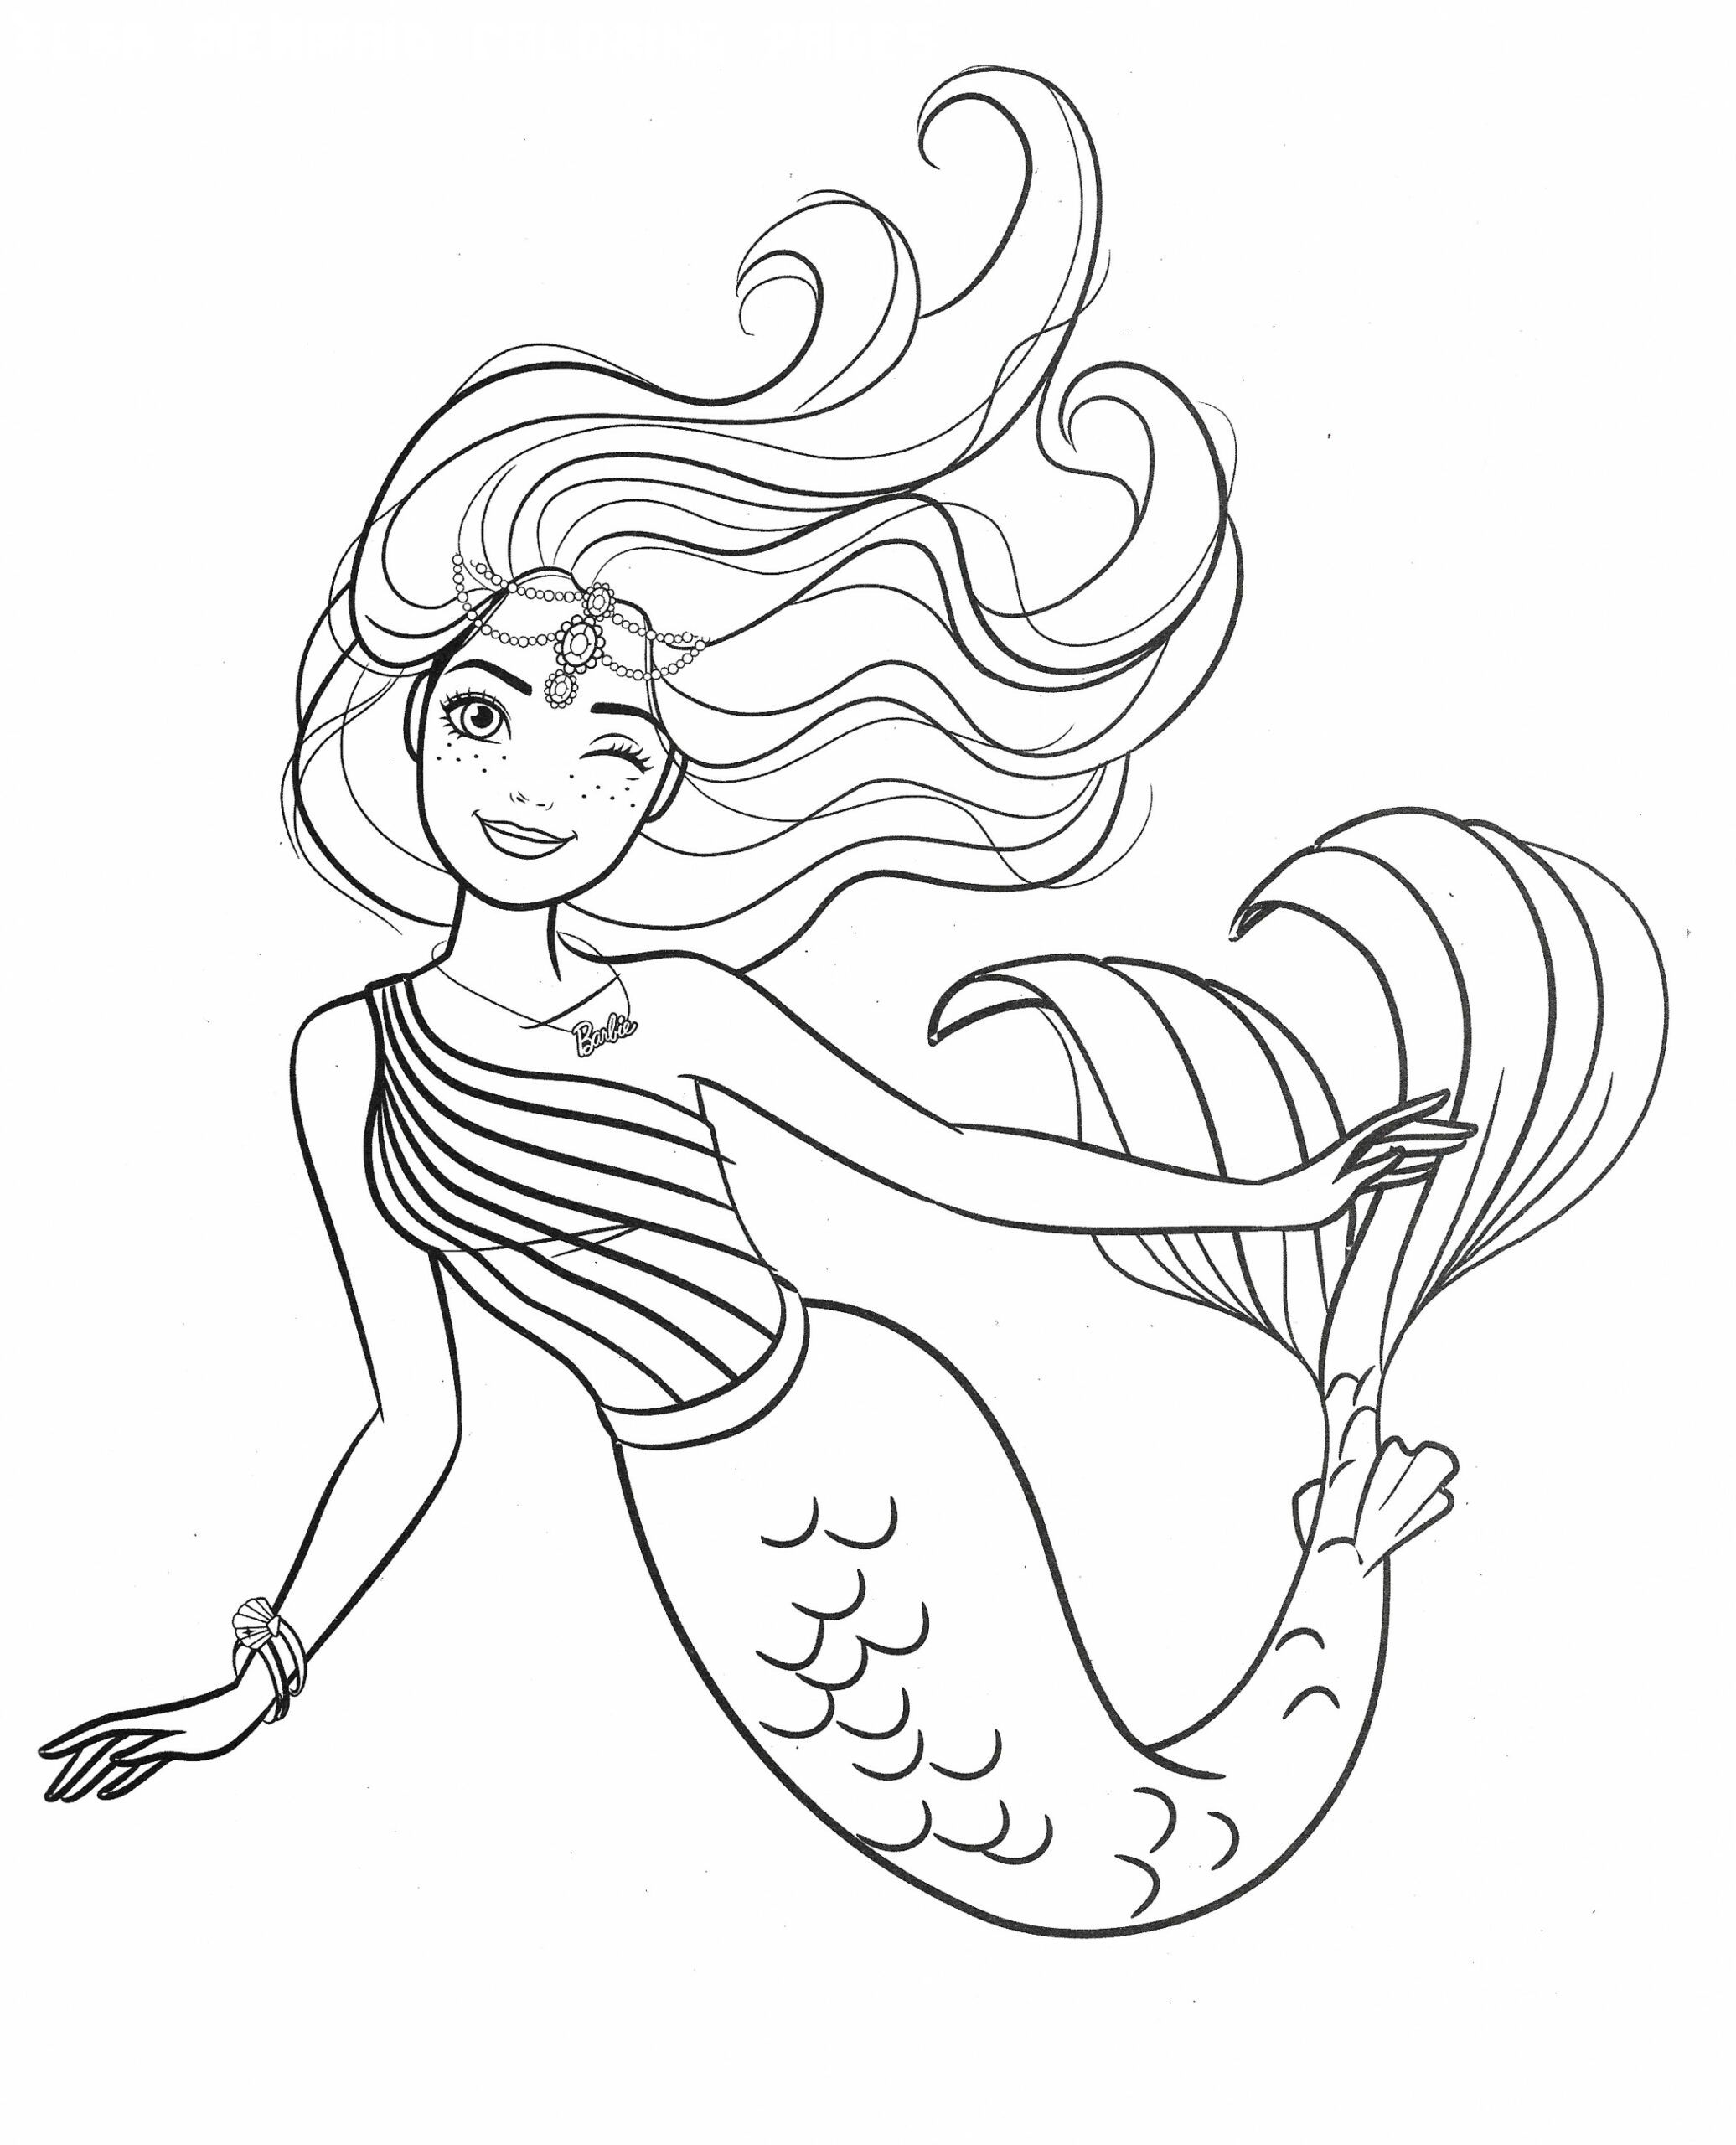 12 Elsa Mermaid Coloring Pages | Mermaid coloring book ...